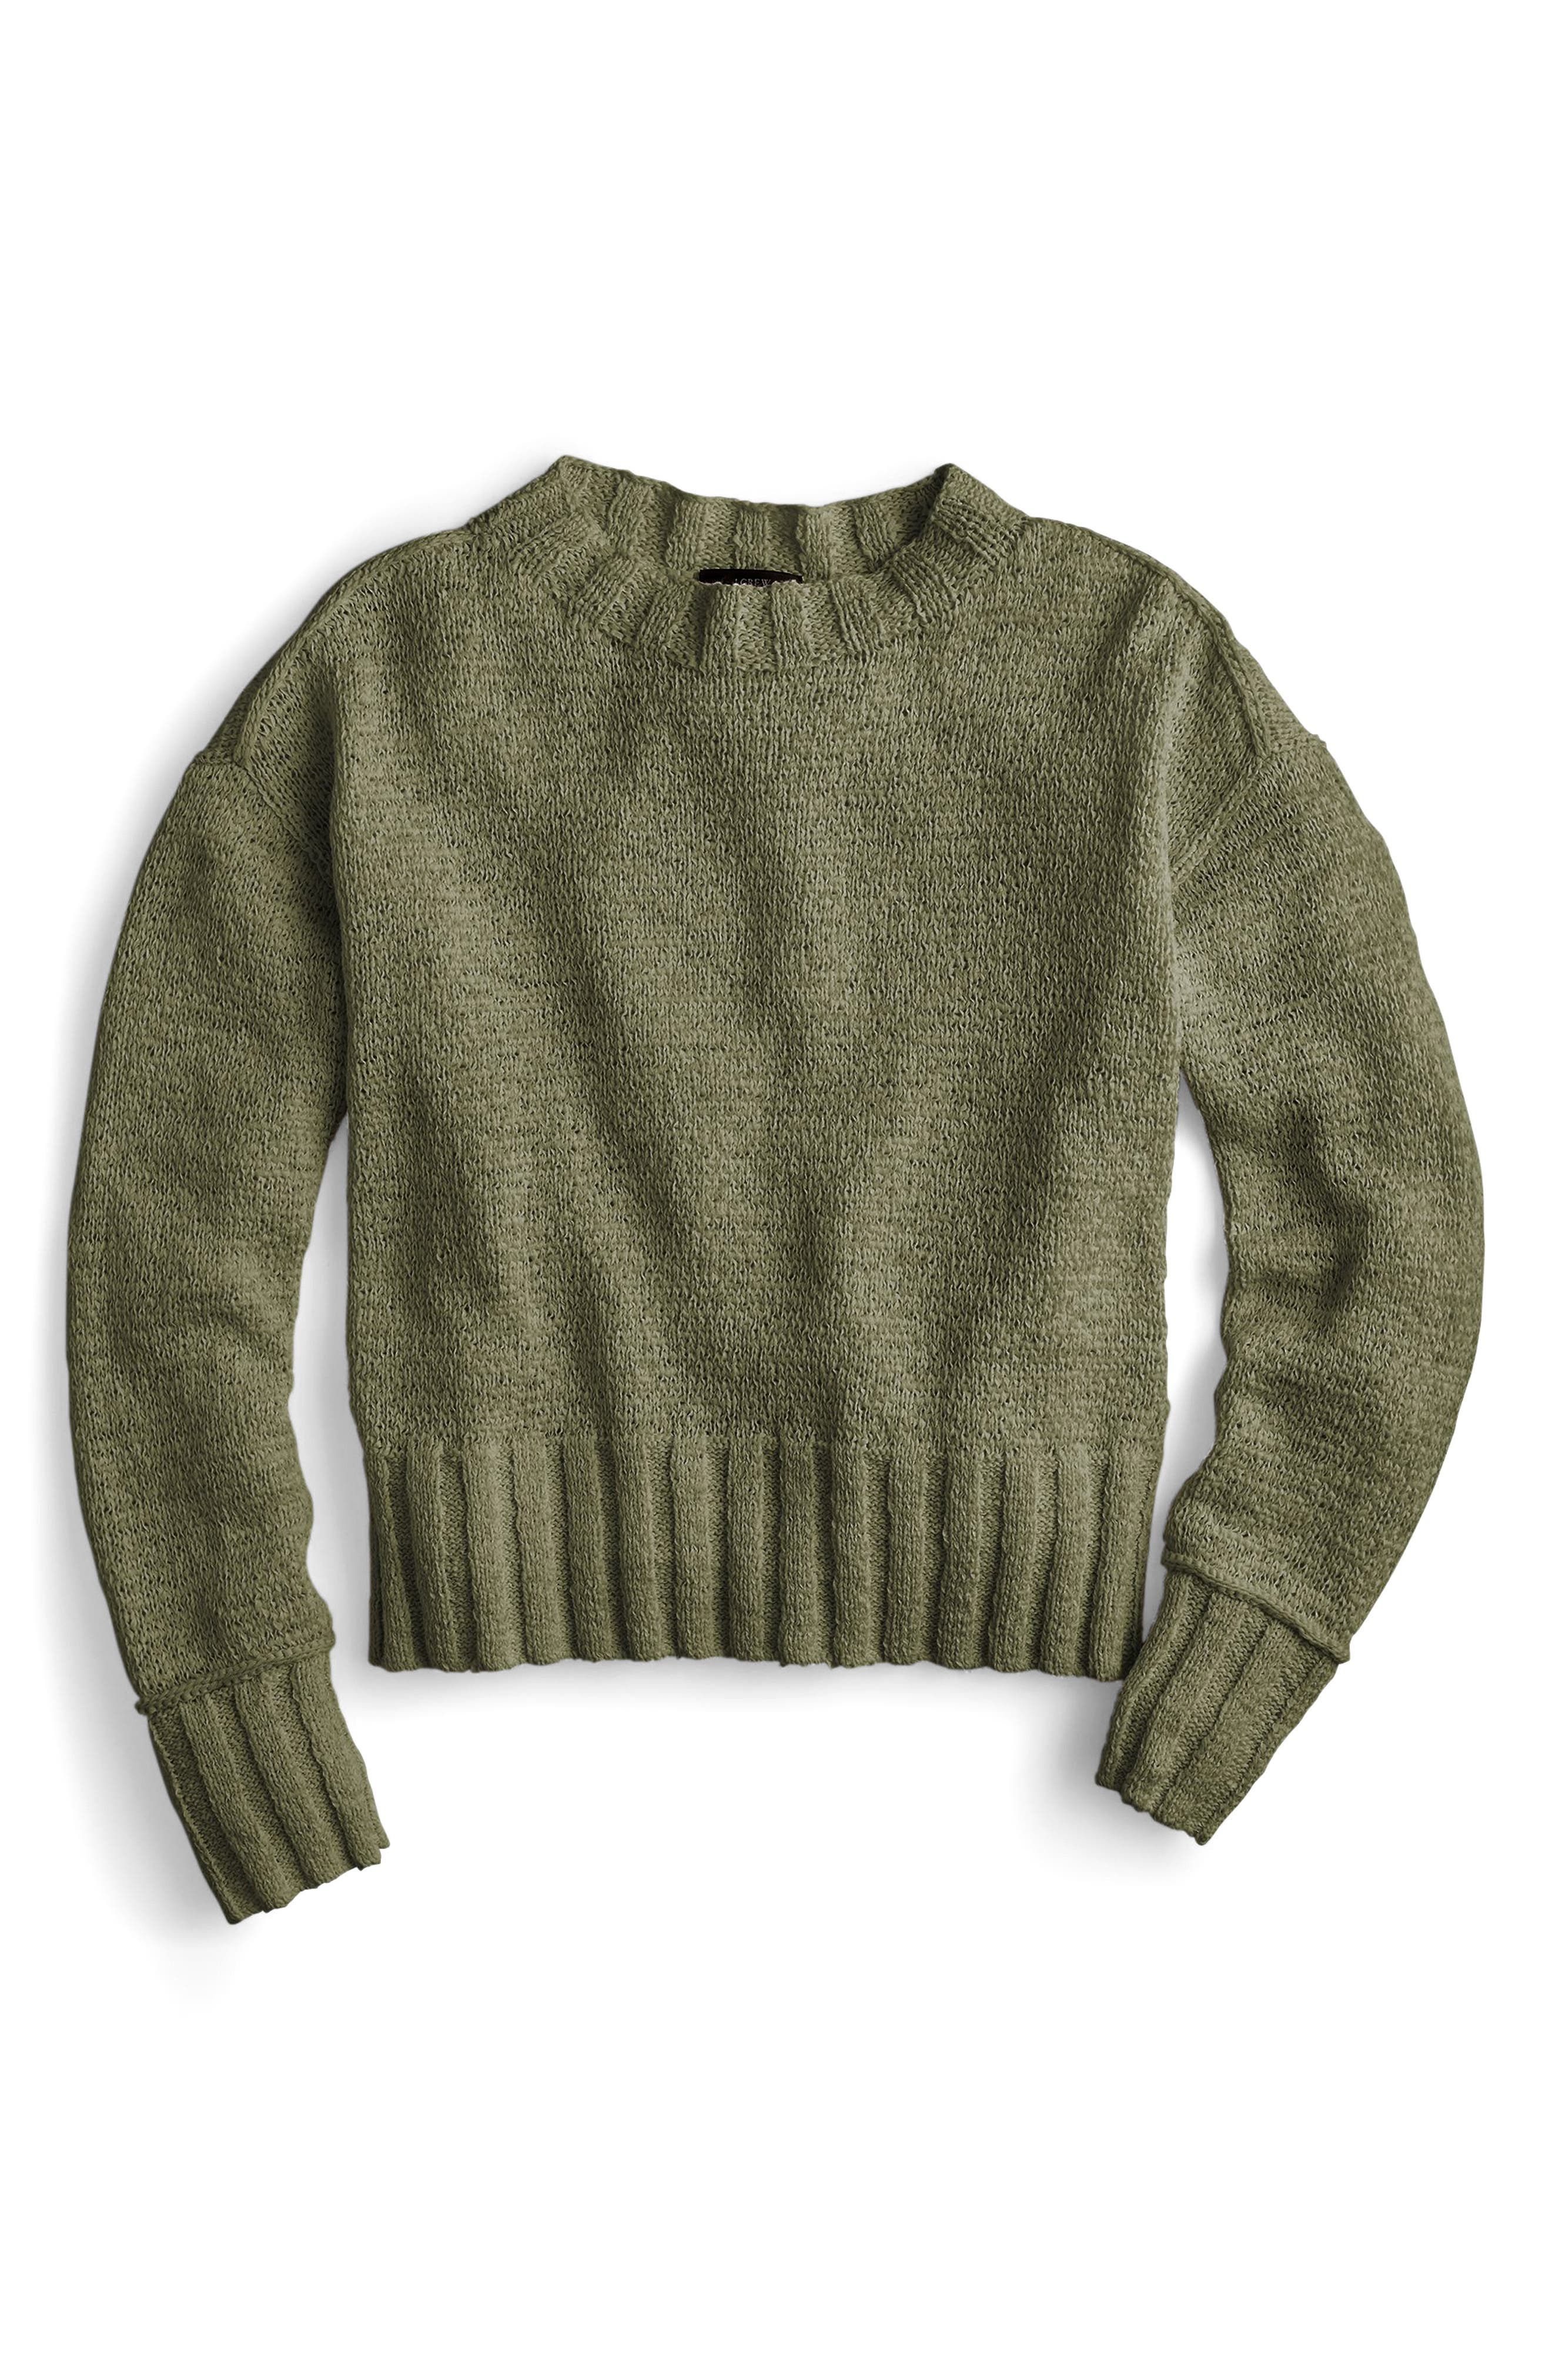 Erica Heathered Cotton Wide Rib Crewneck Sweater,                             Alternate thumbnail 5, color,